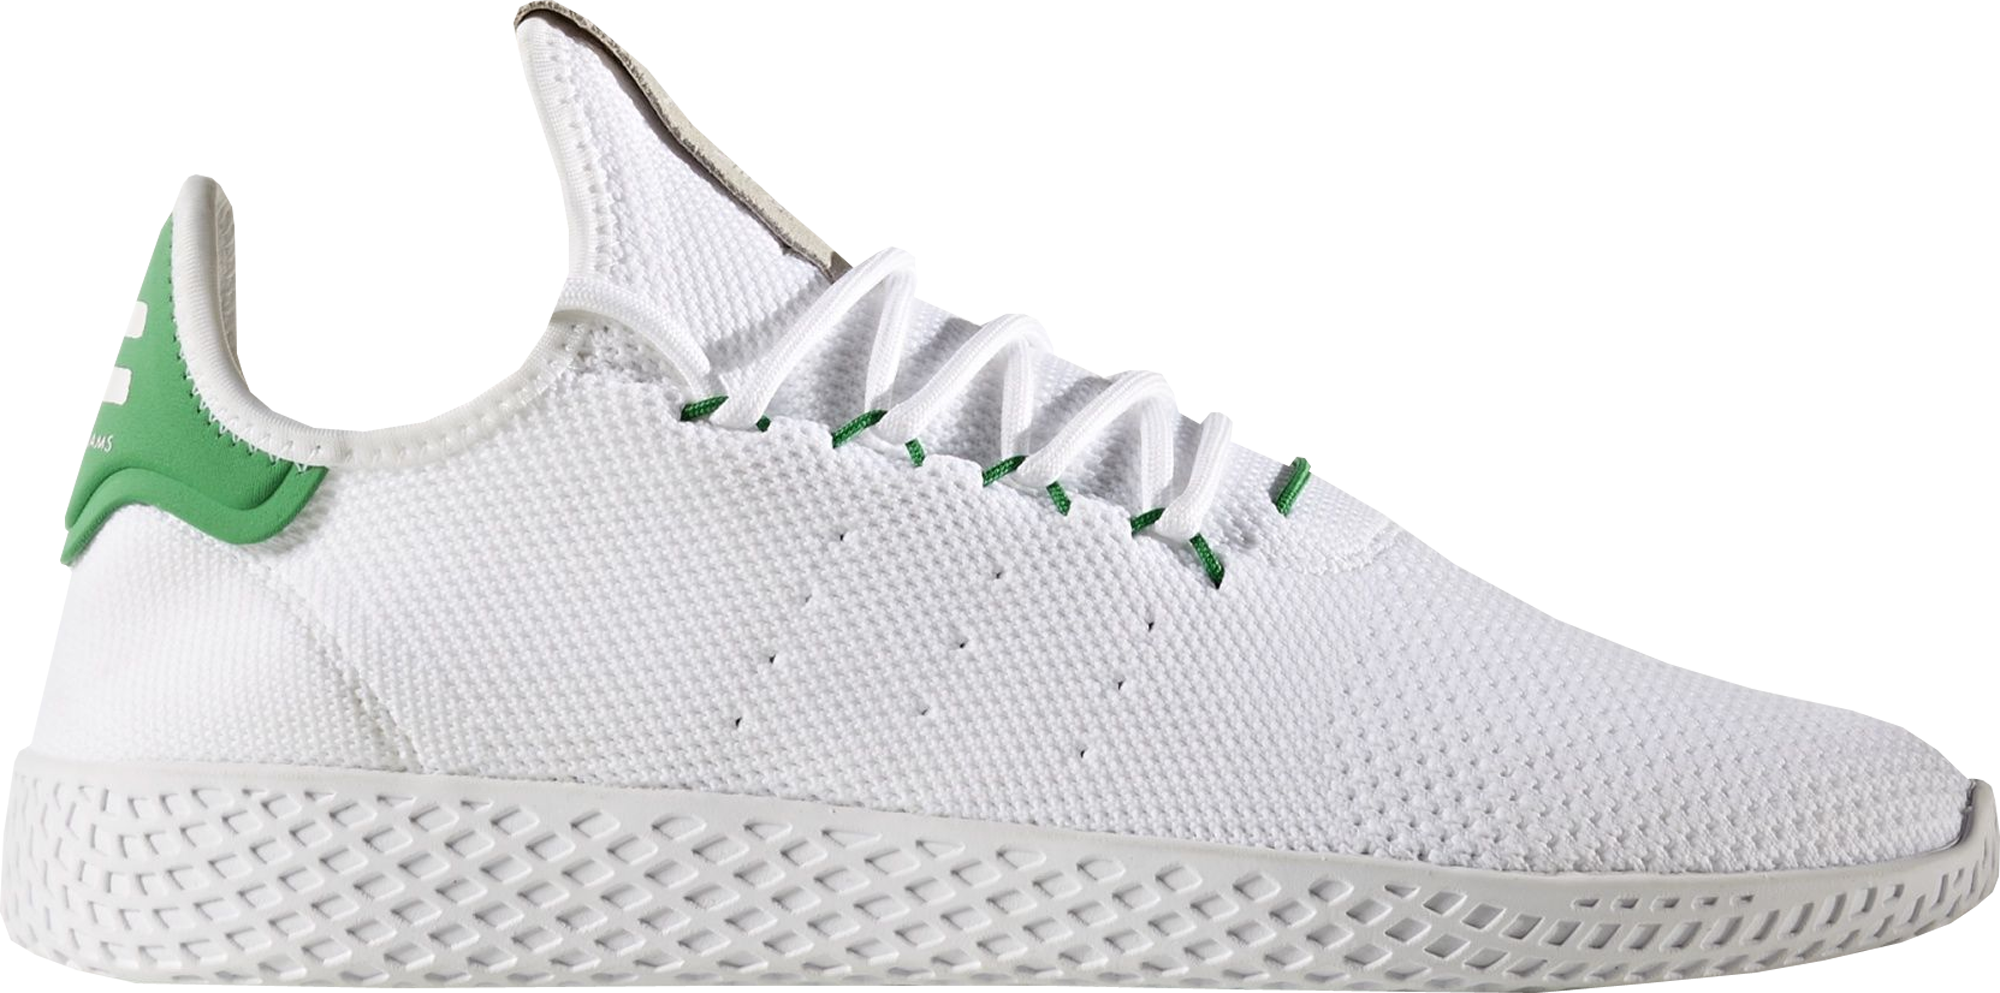 adidas Tennis HU Pharrell White Green